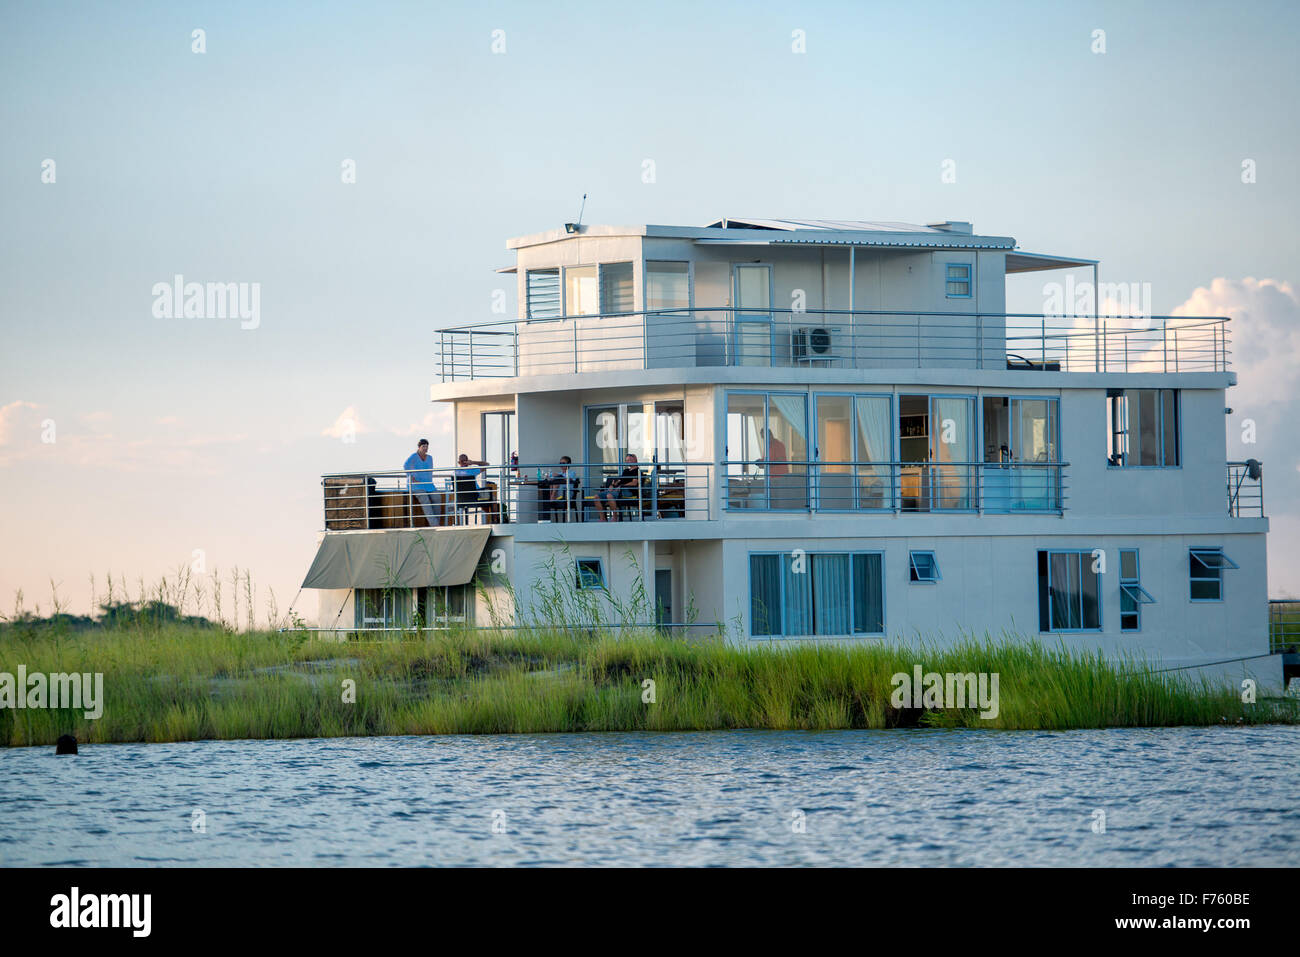 Kasane, Botswana - Chobe National Park Floating Safari Camp - Stock Image